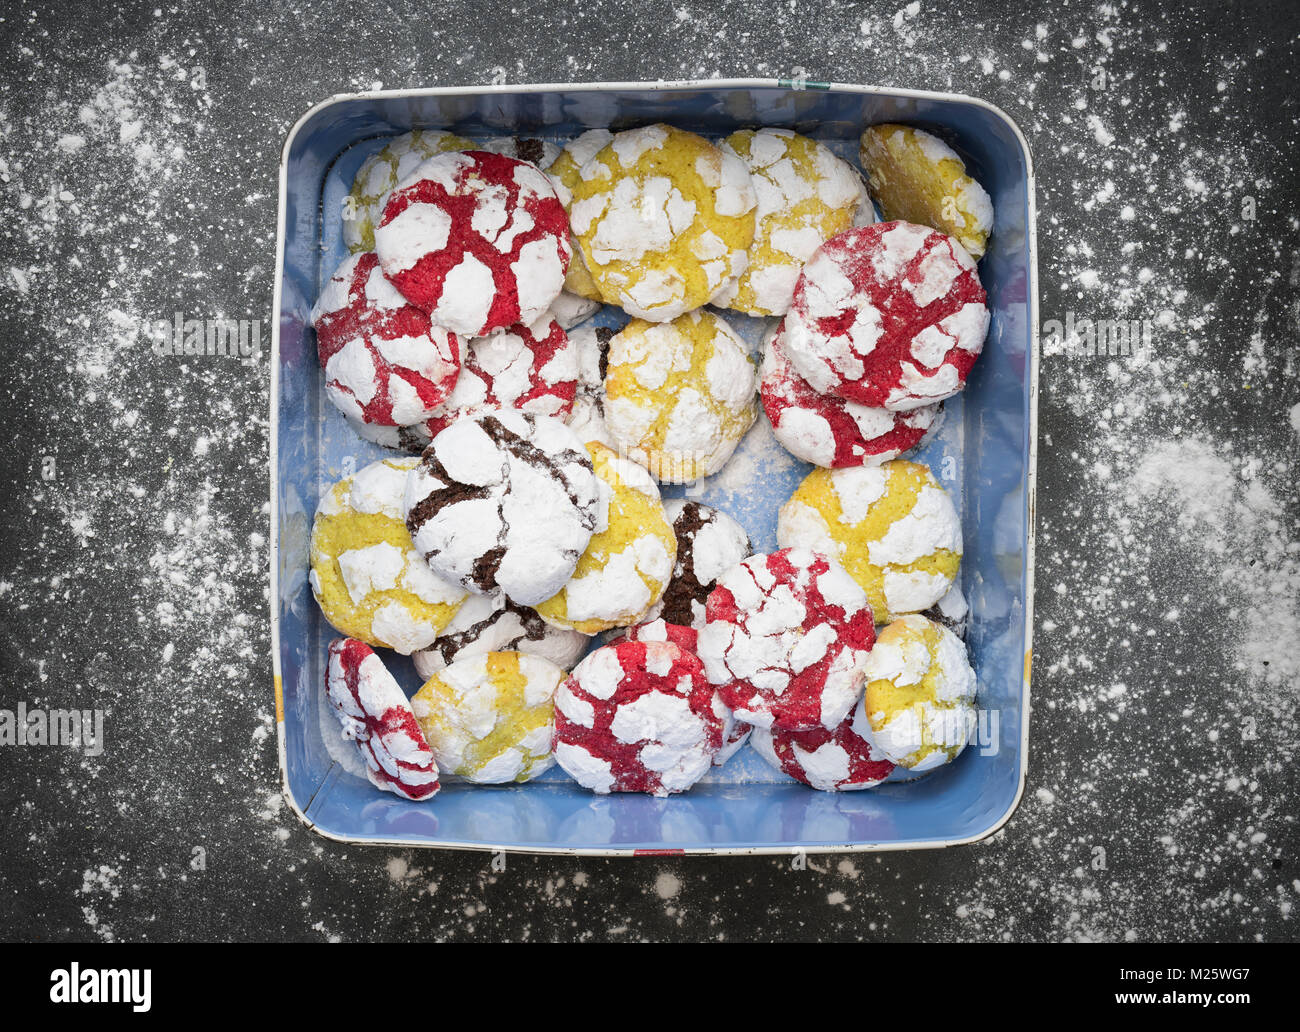 Homemade Lemon, Raspberry and Chocolate Crinkle Cookies in a tin on slate background - Stock Image